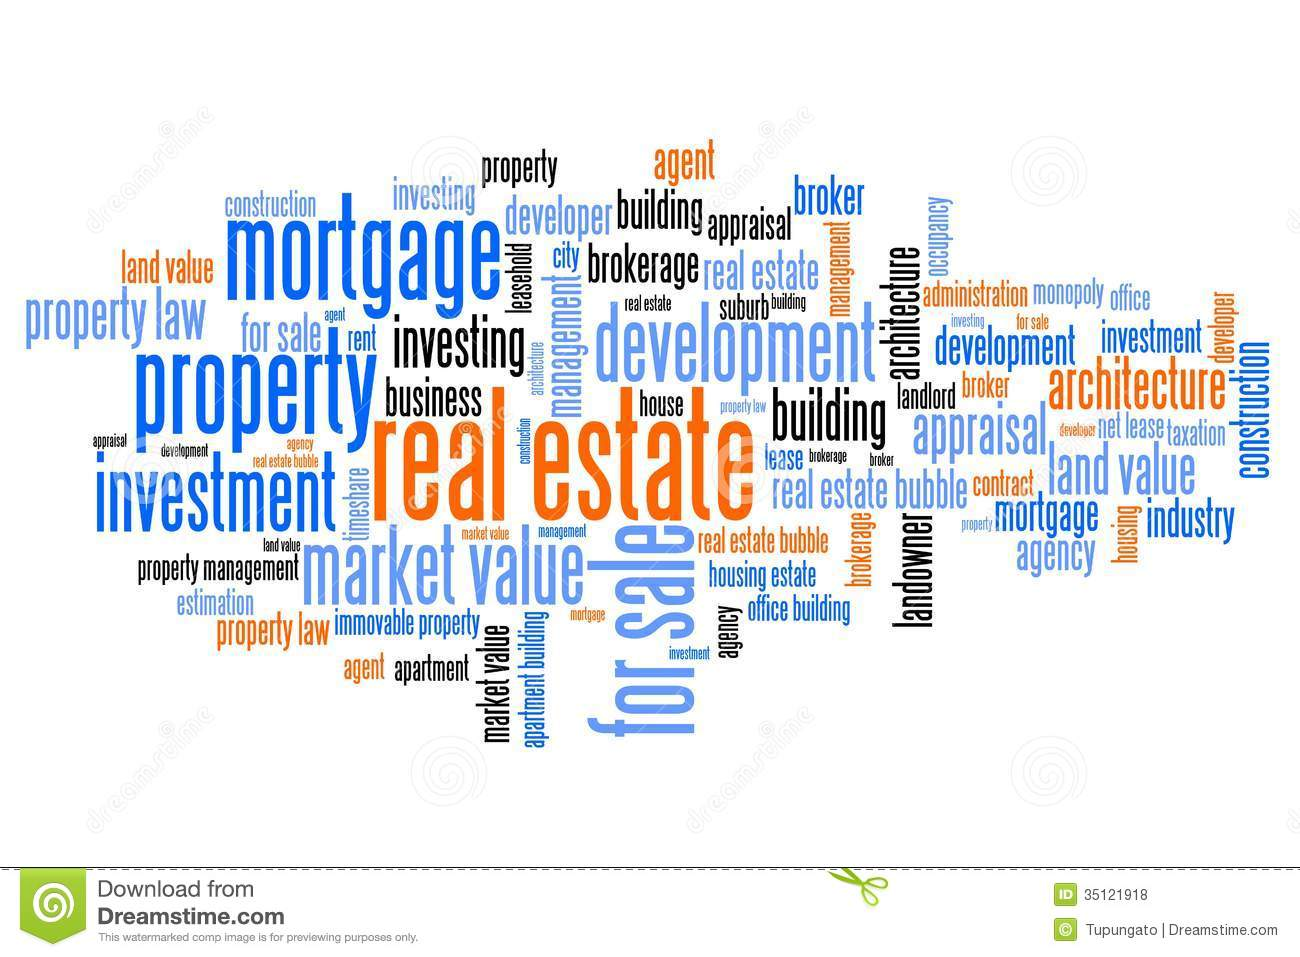 property-investment-real-estate-trading-